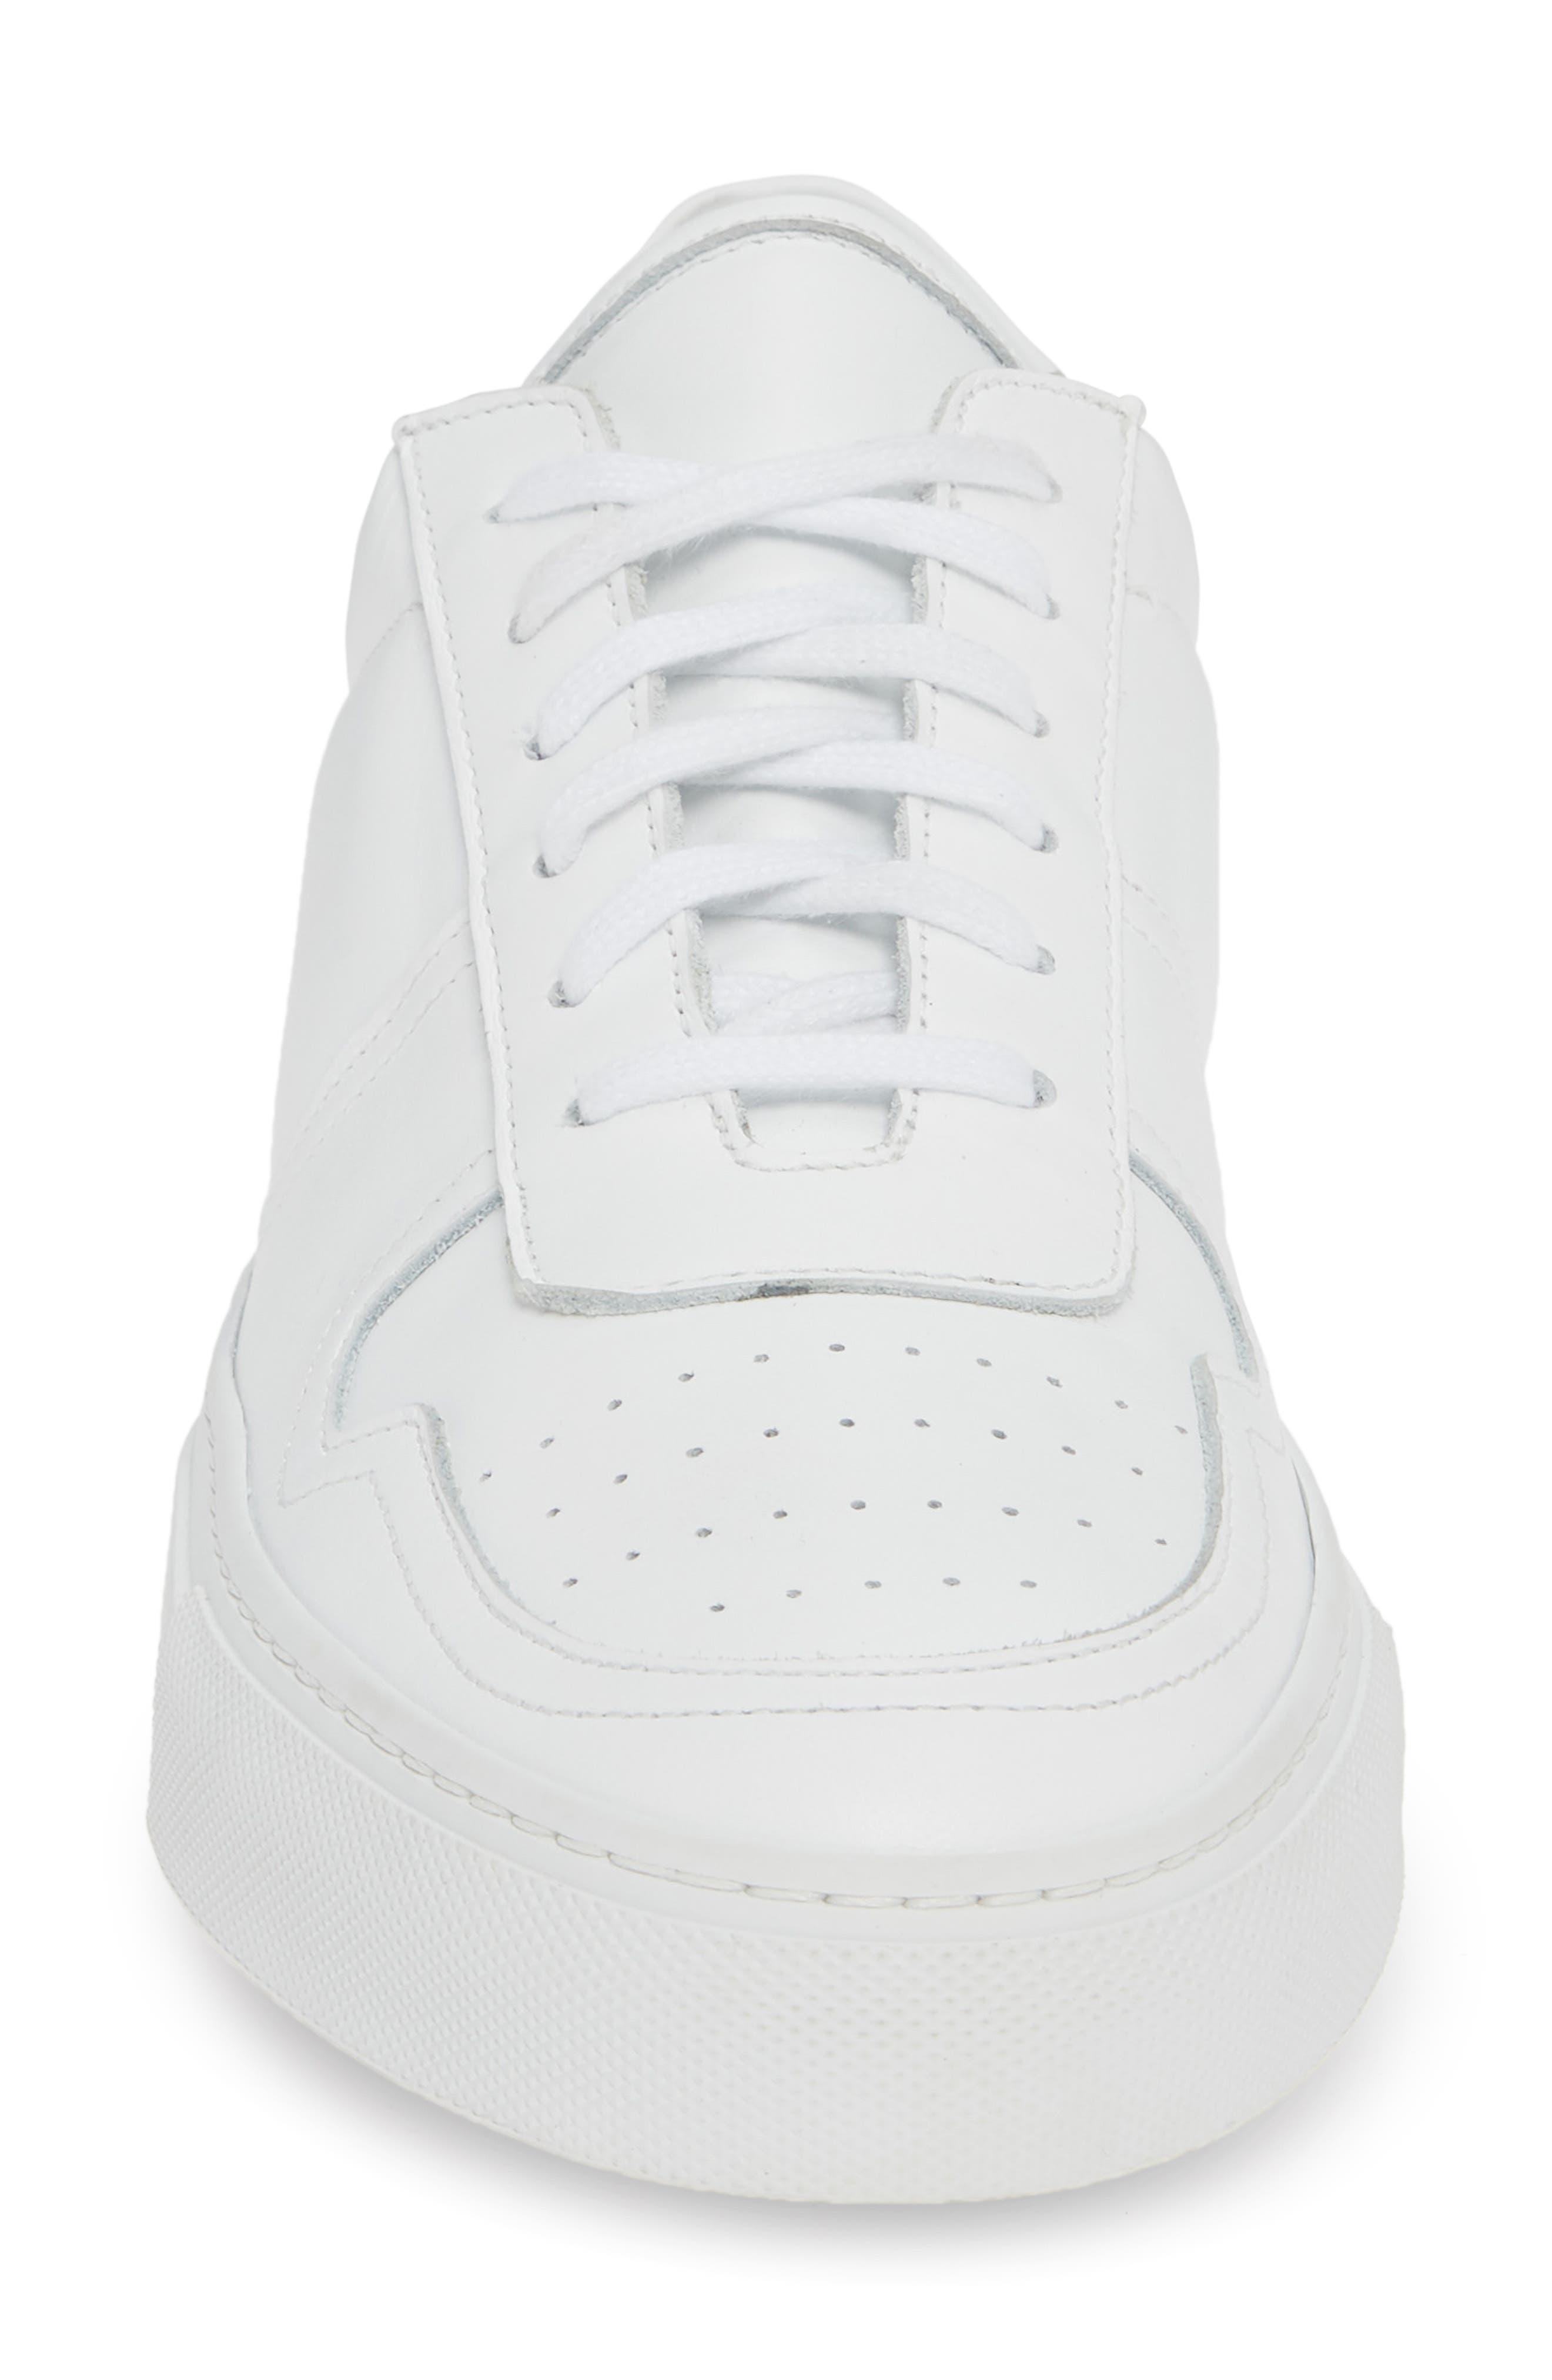 COMMON PROJECTS, Bball Low Top Sneaker, Alternate thumbnail 4, color, WHITE